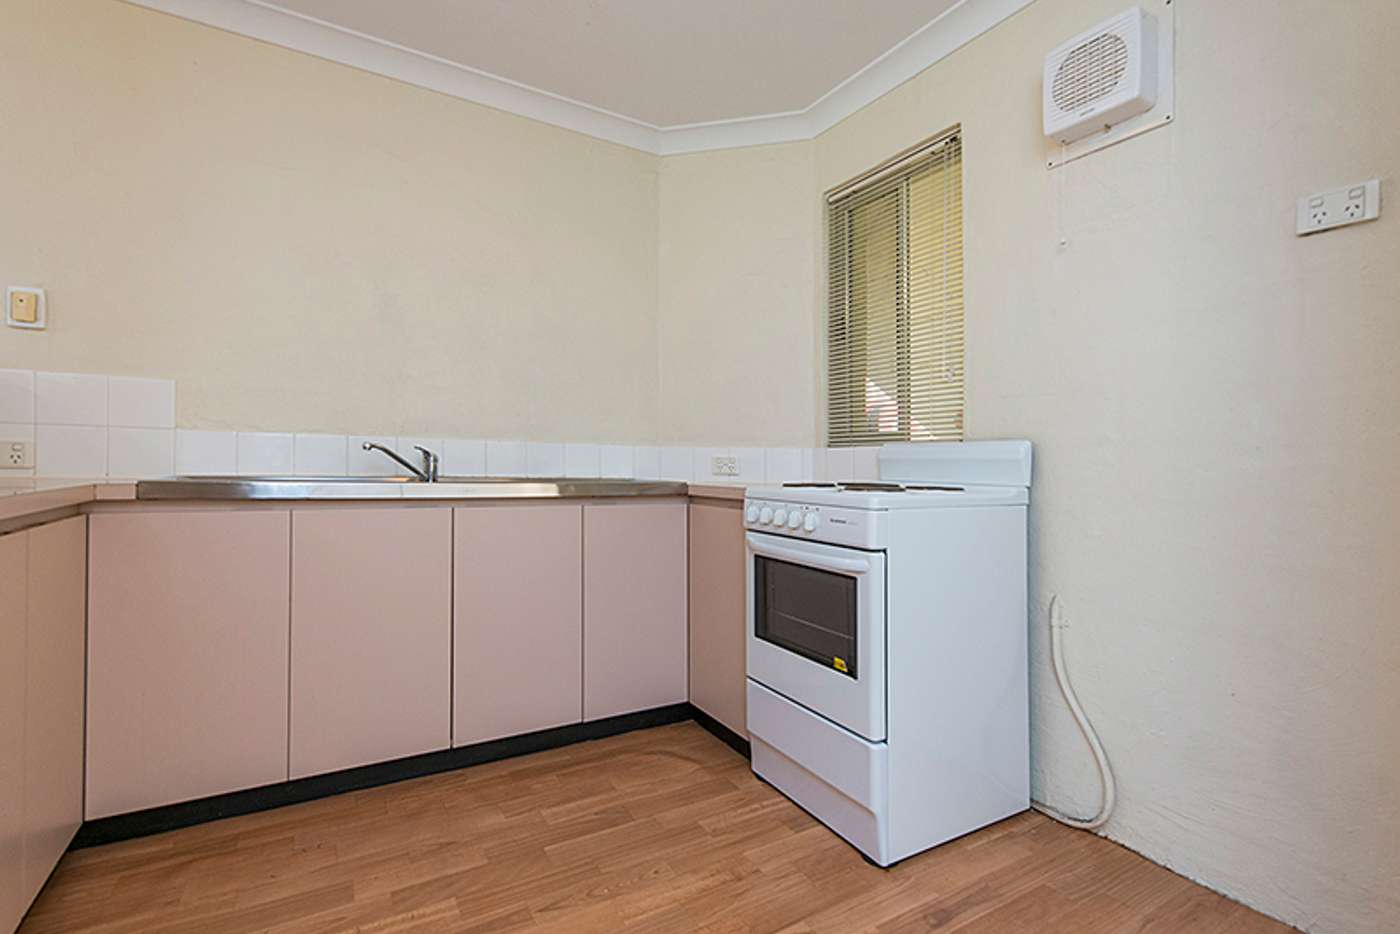 Sixth view of Homely unit listing, 22/11 McAtee Court, Fremantle WA 6160